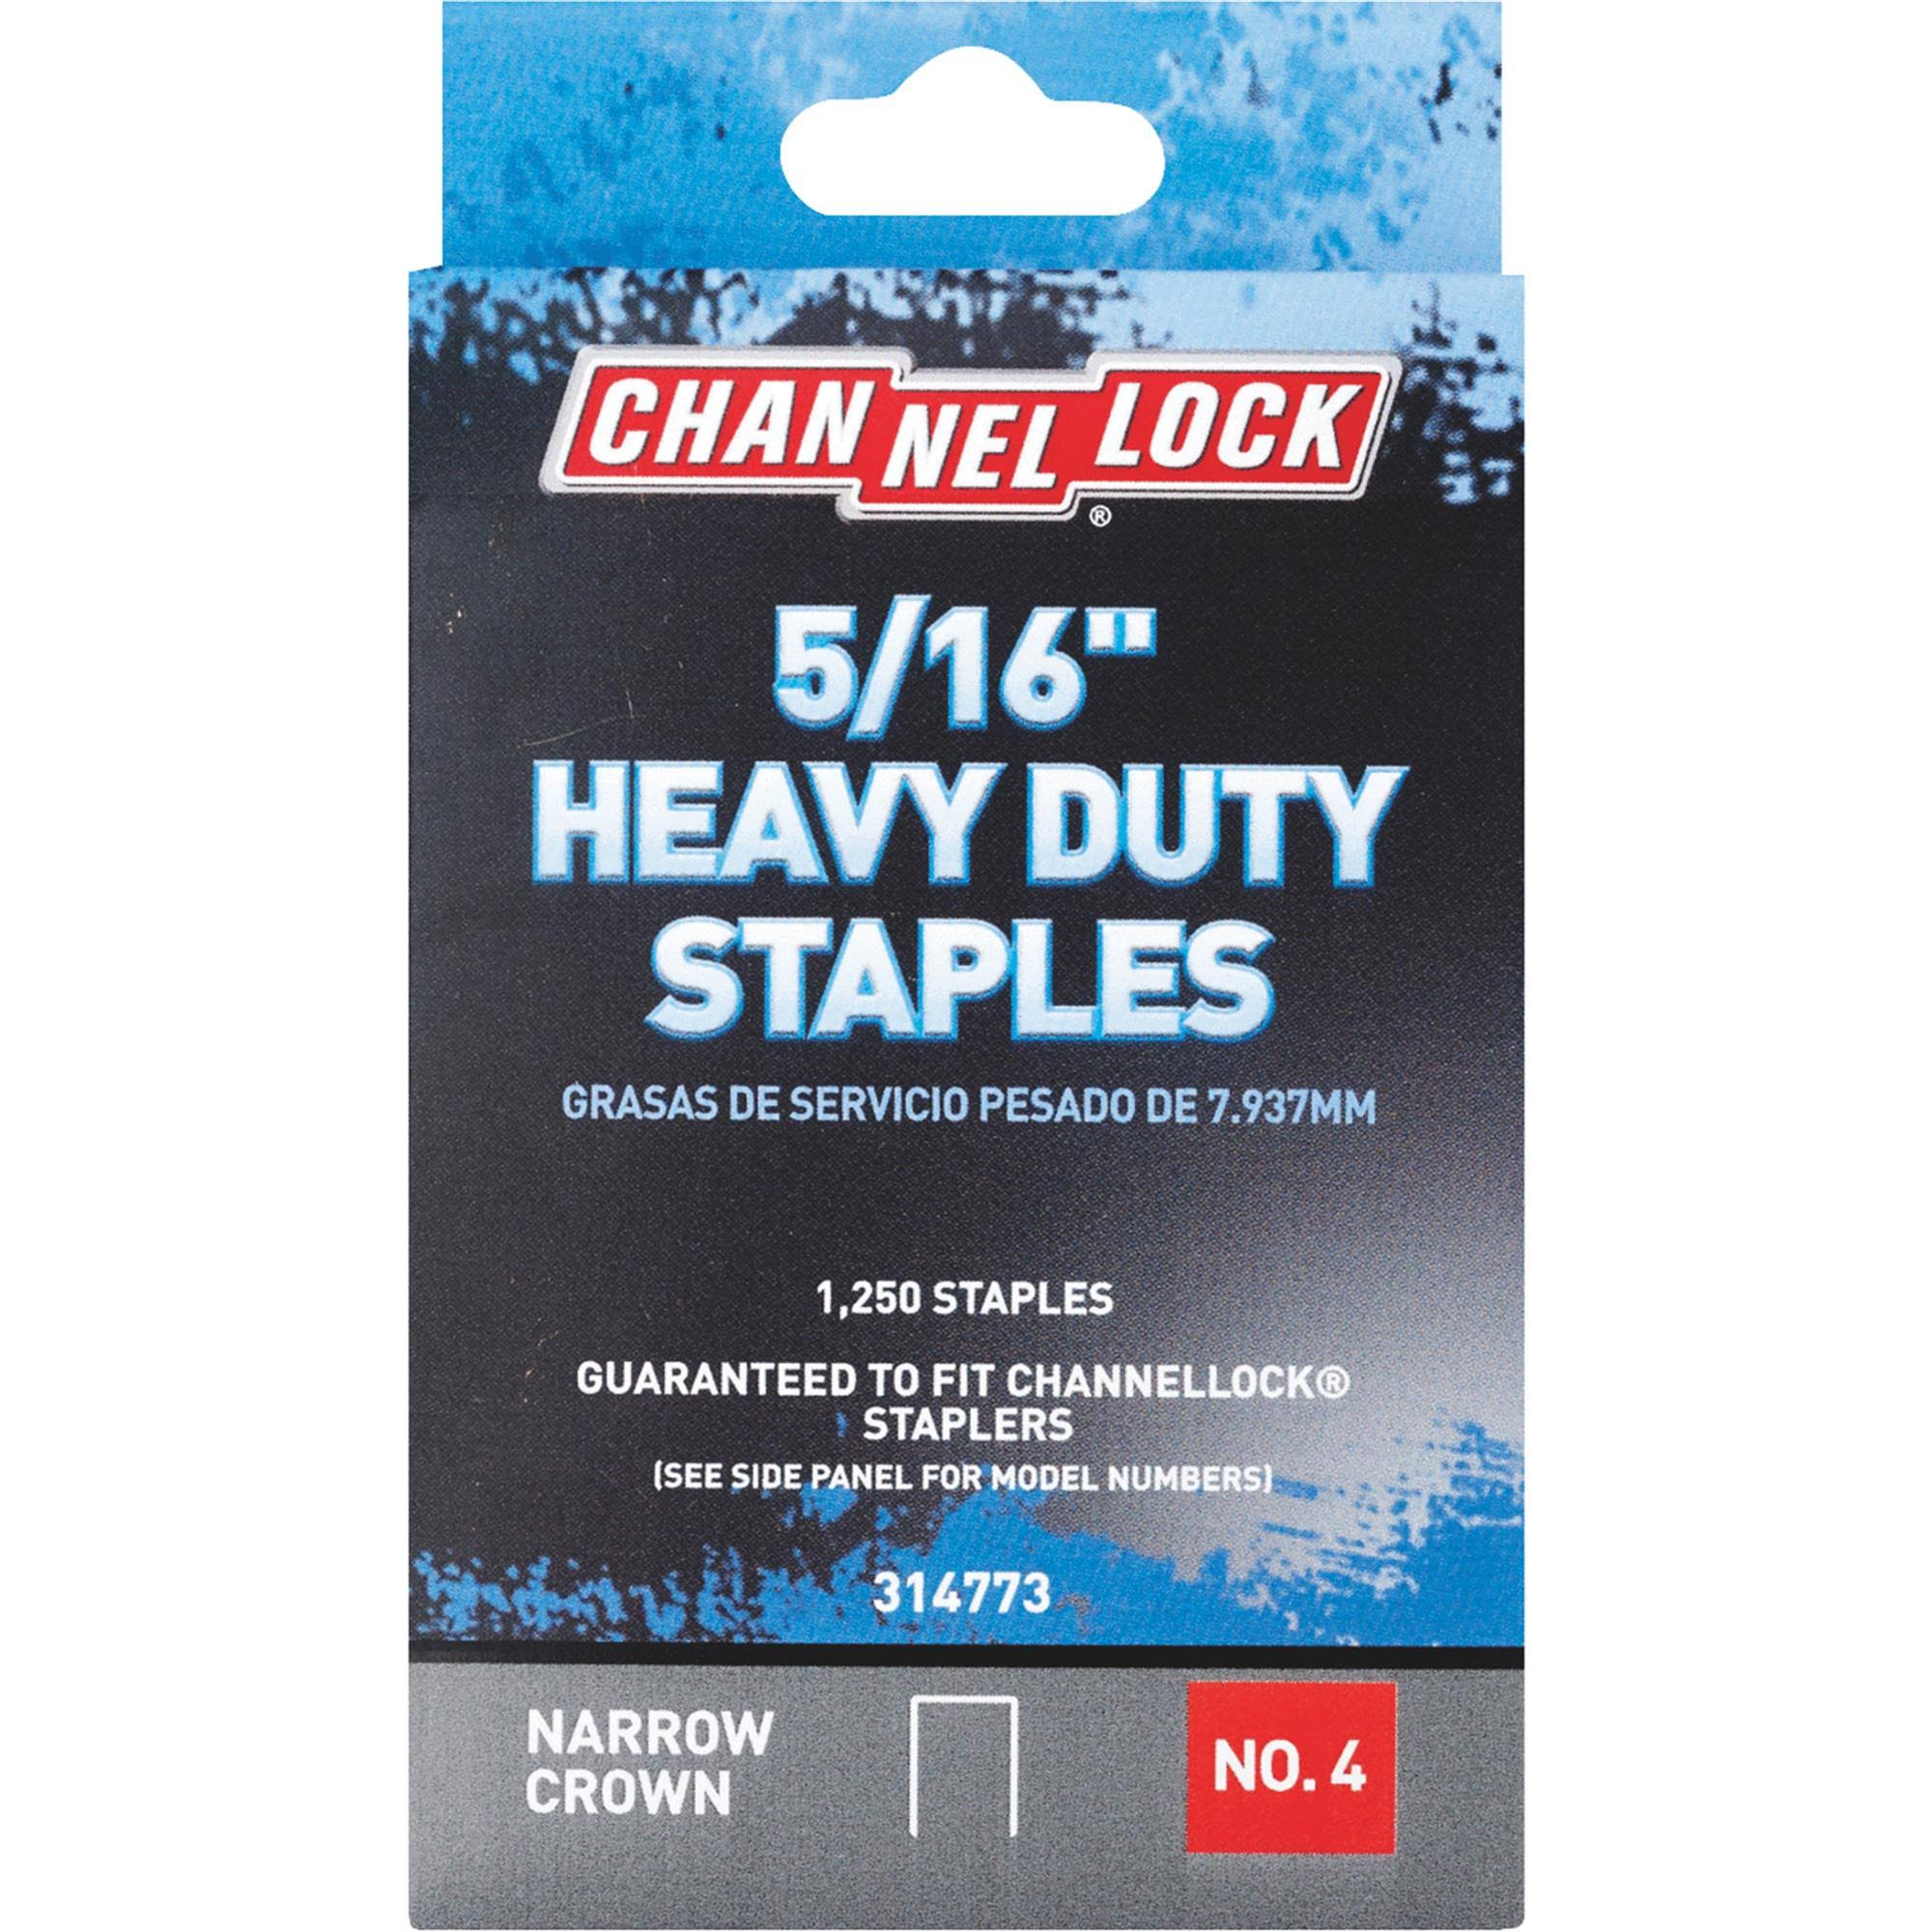 Channellock No. 4 Heavy-Duty Narrow Crown Staple (Pack of 5) 314773